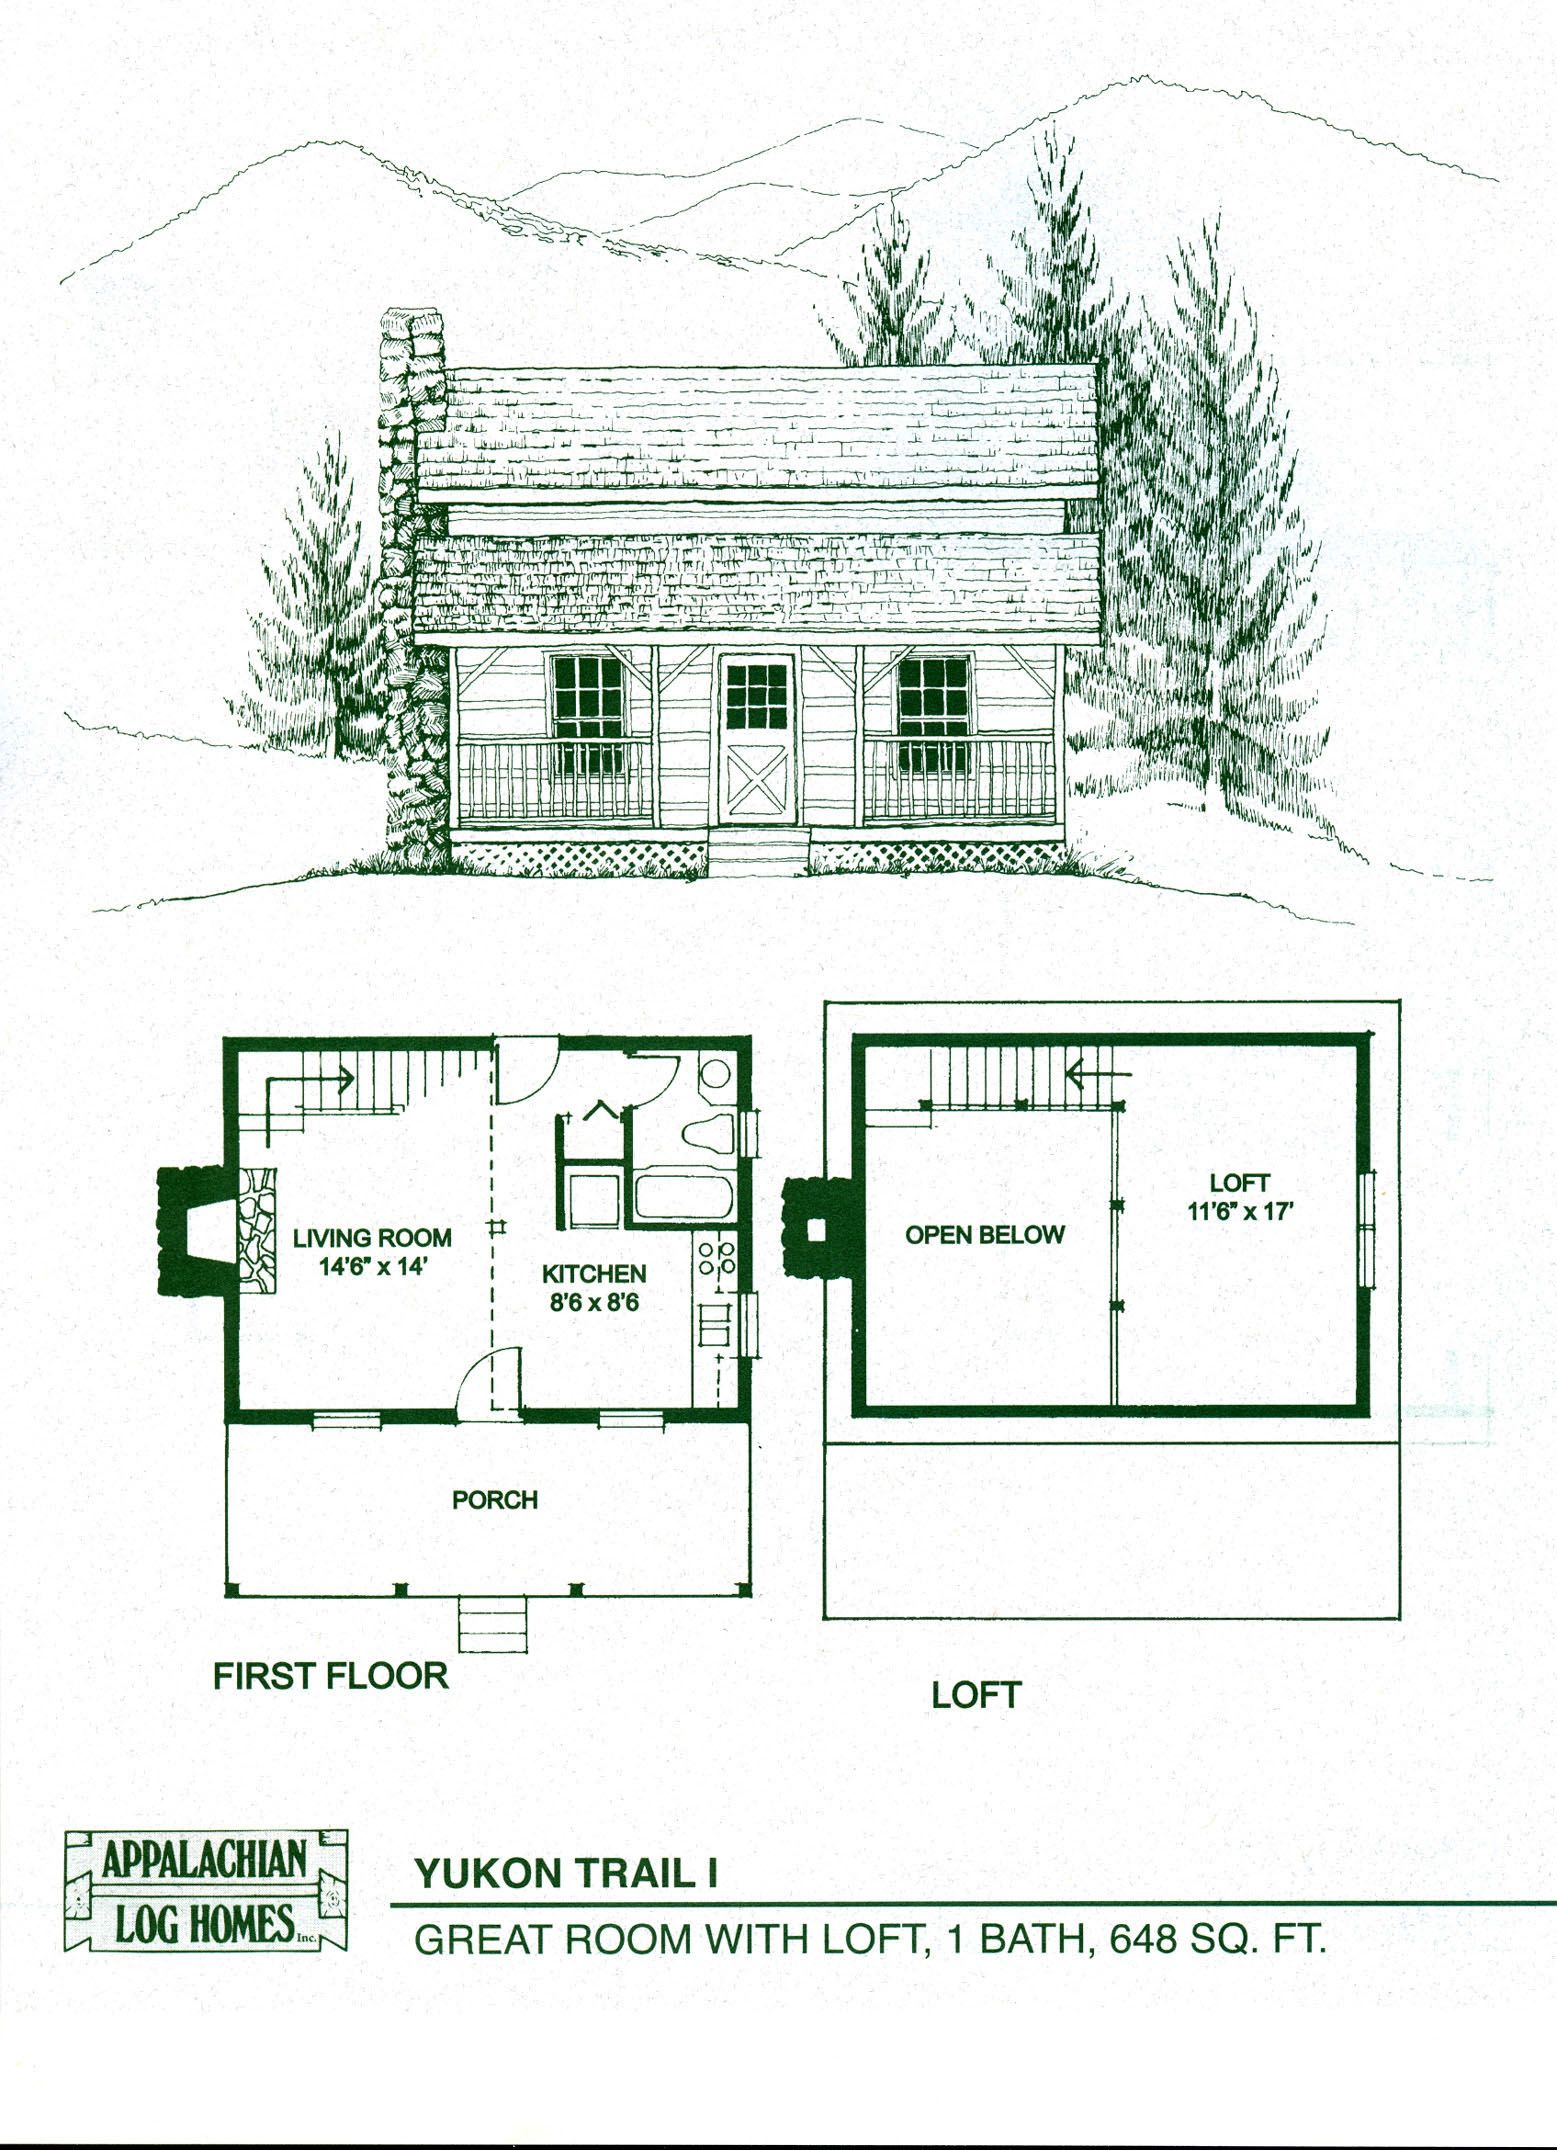 log home floor plans log cabin kits appalachian log On cottage floor plans